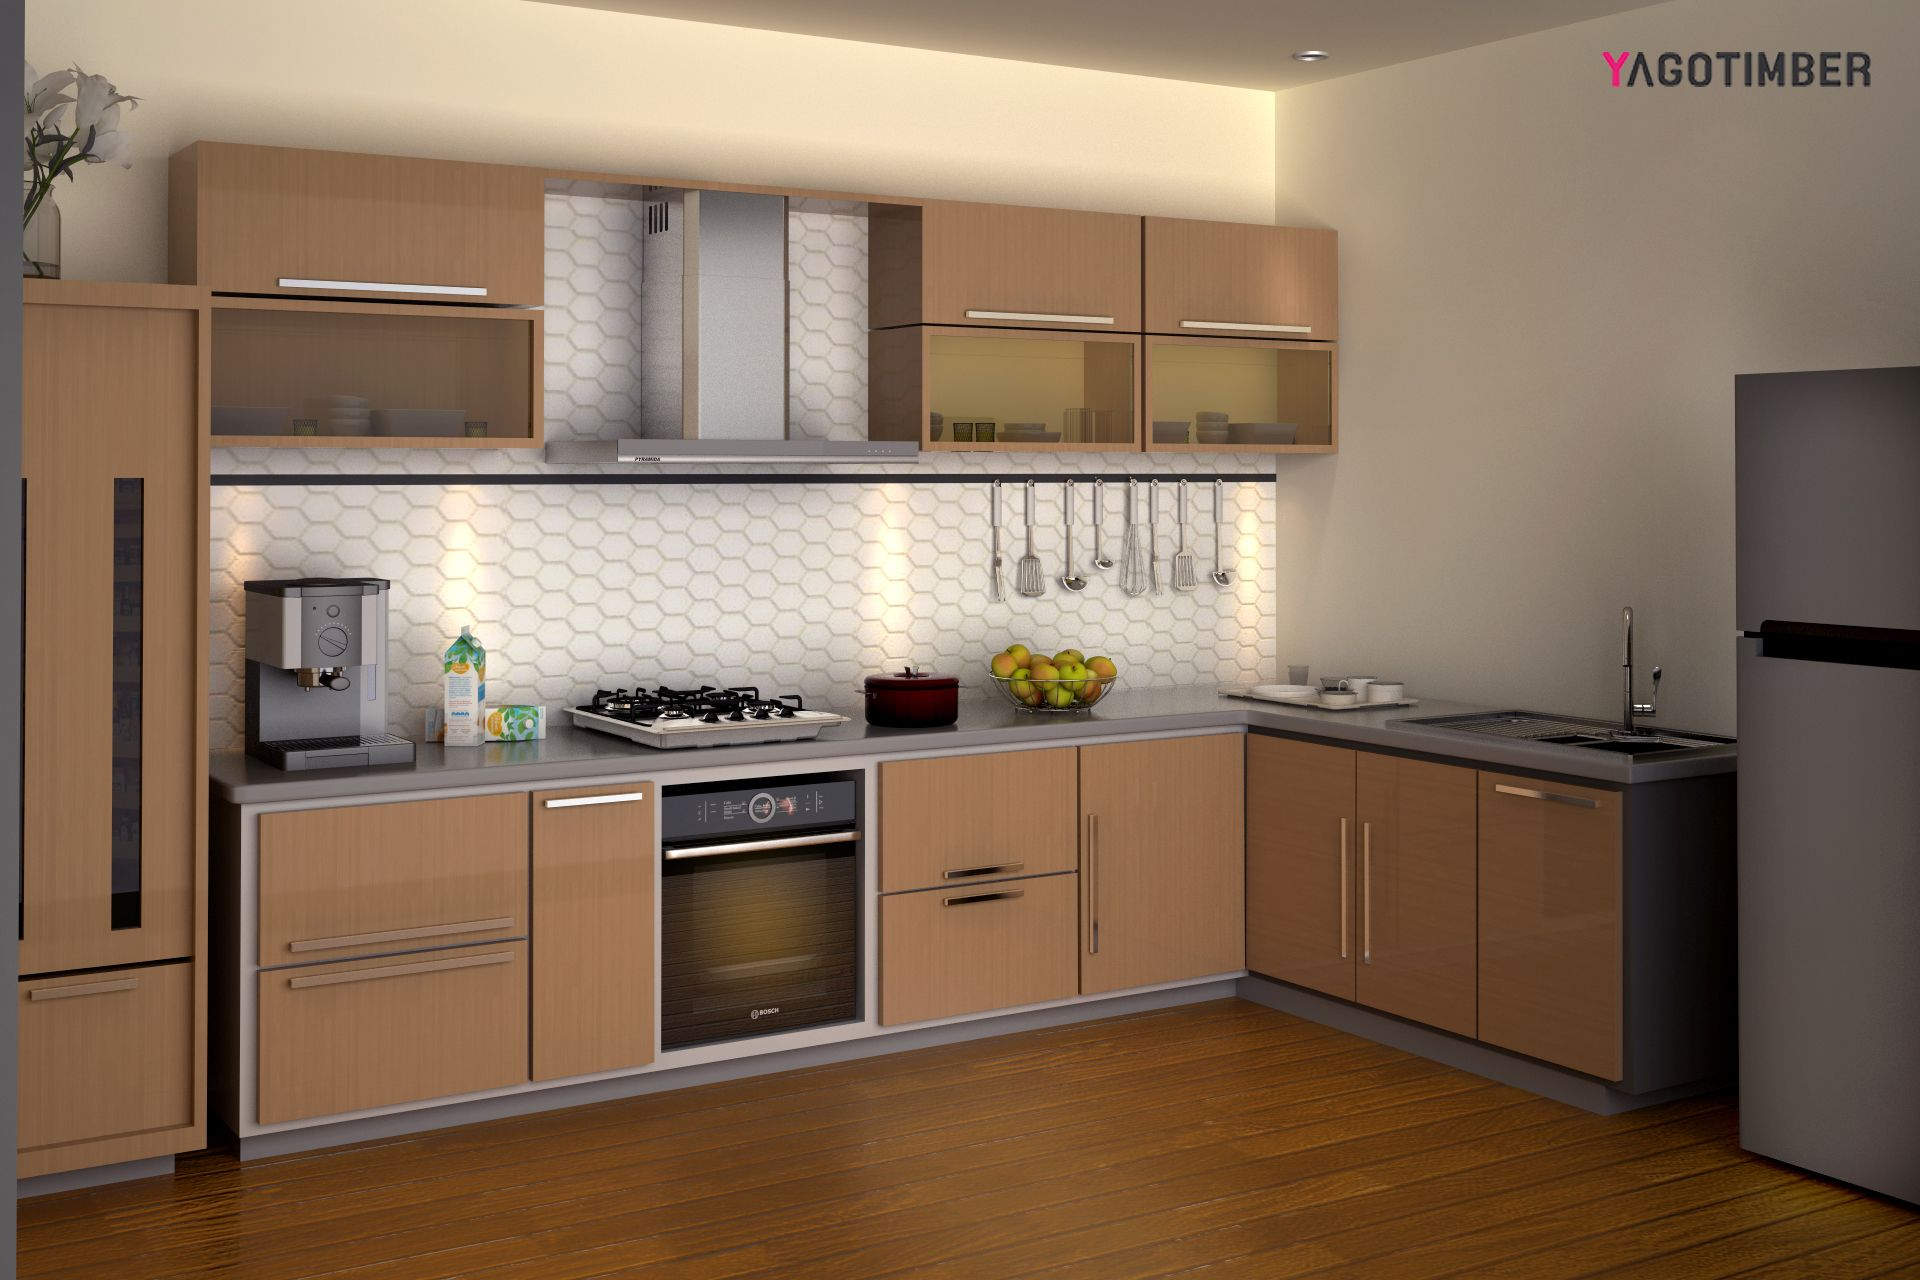 Modularkitchen Interiordesign Kitchen Designer In Delhi Yagotimber Kitchen Design Interior Design Kitchen L Shaped Kitchen Interior